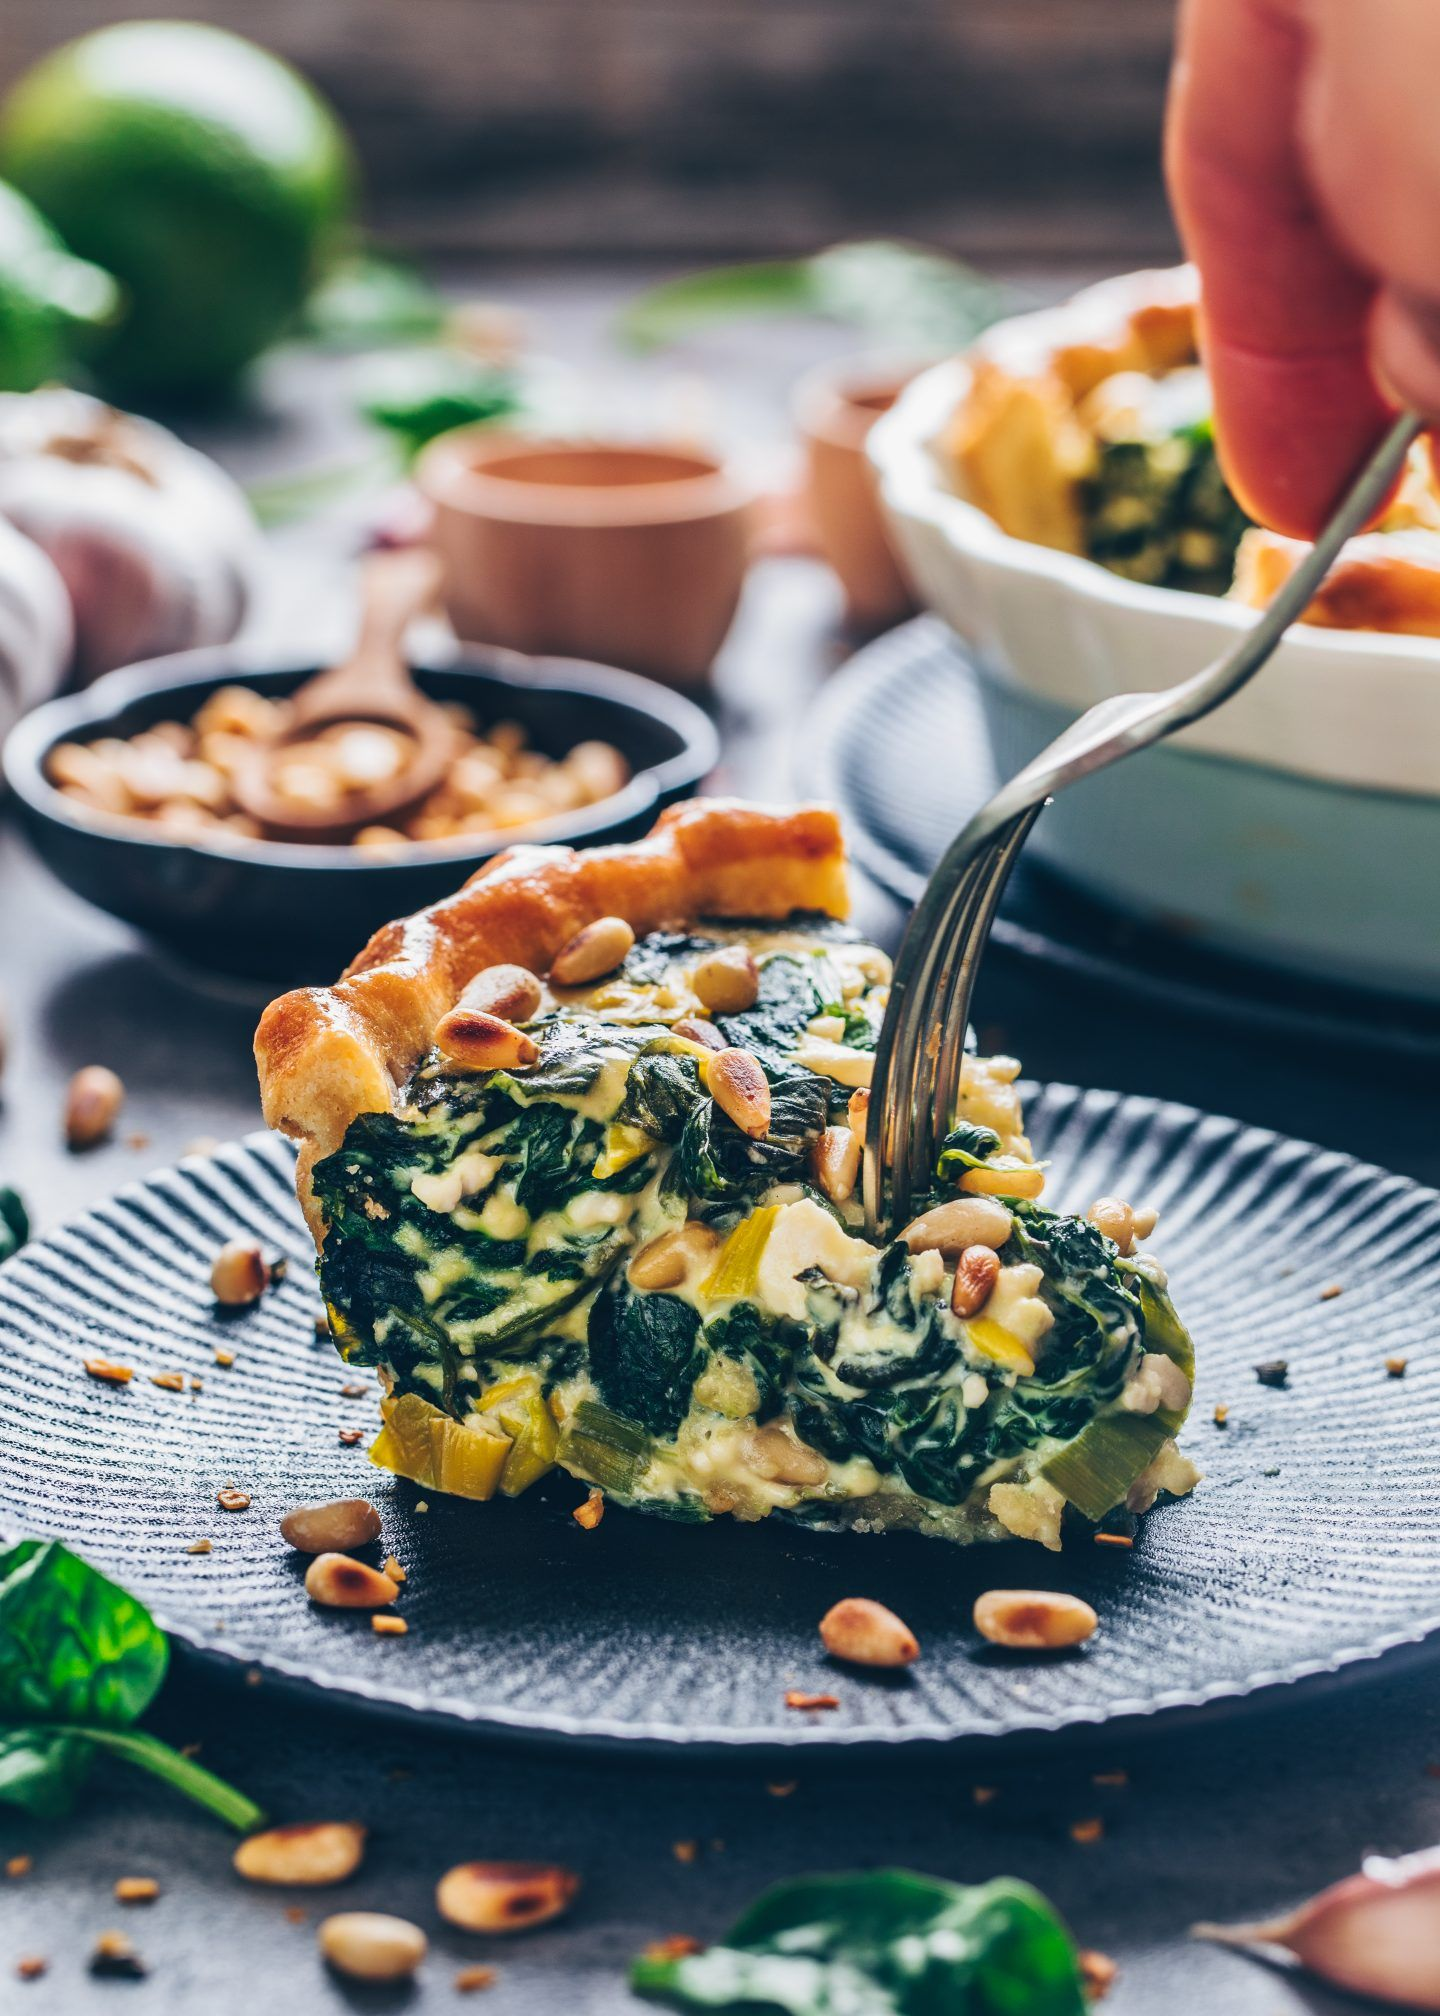 Vegan Spinach Quiche Recipe Easy Bianca Zapatka Recipes Recipe Quiche Recipes Easy Quiche Recipes Spinach Quiche